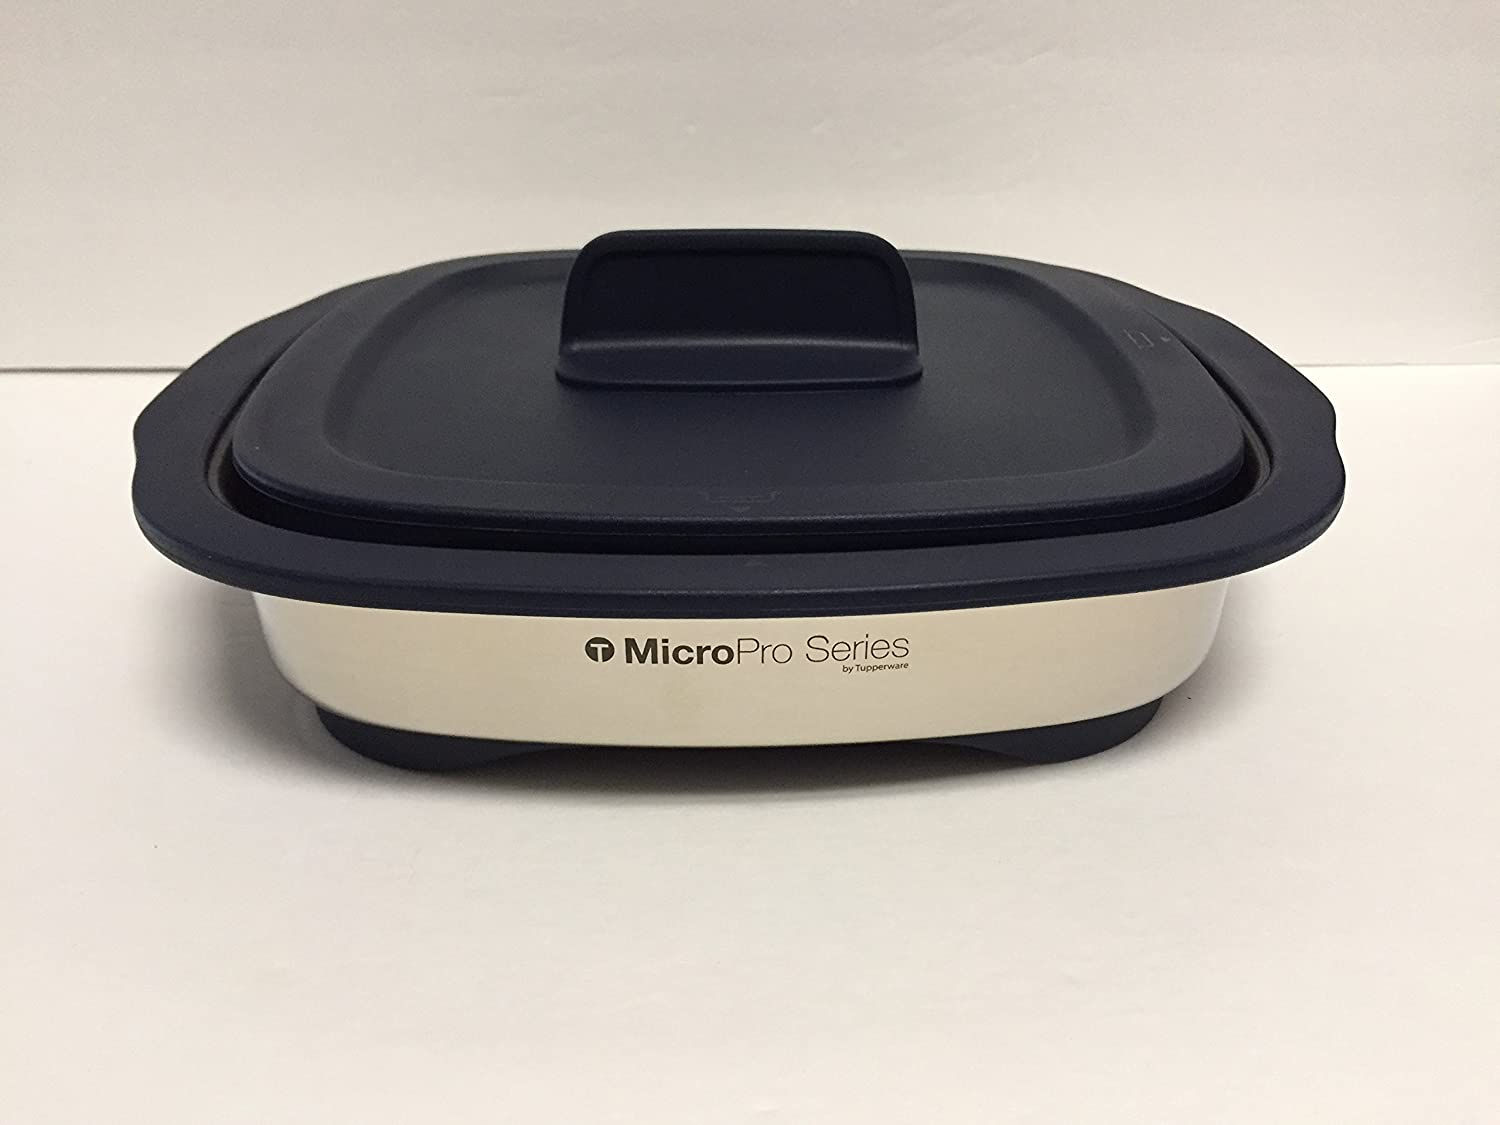 Tupperware MicroPro Grill - Grilling in your Microwave - New In Unopened Box